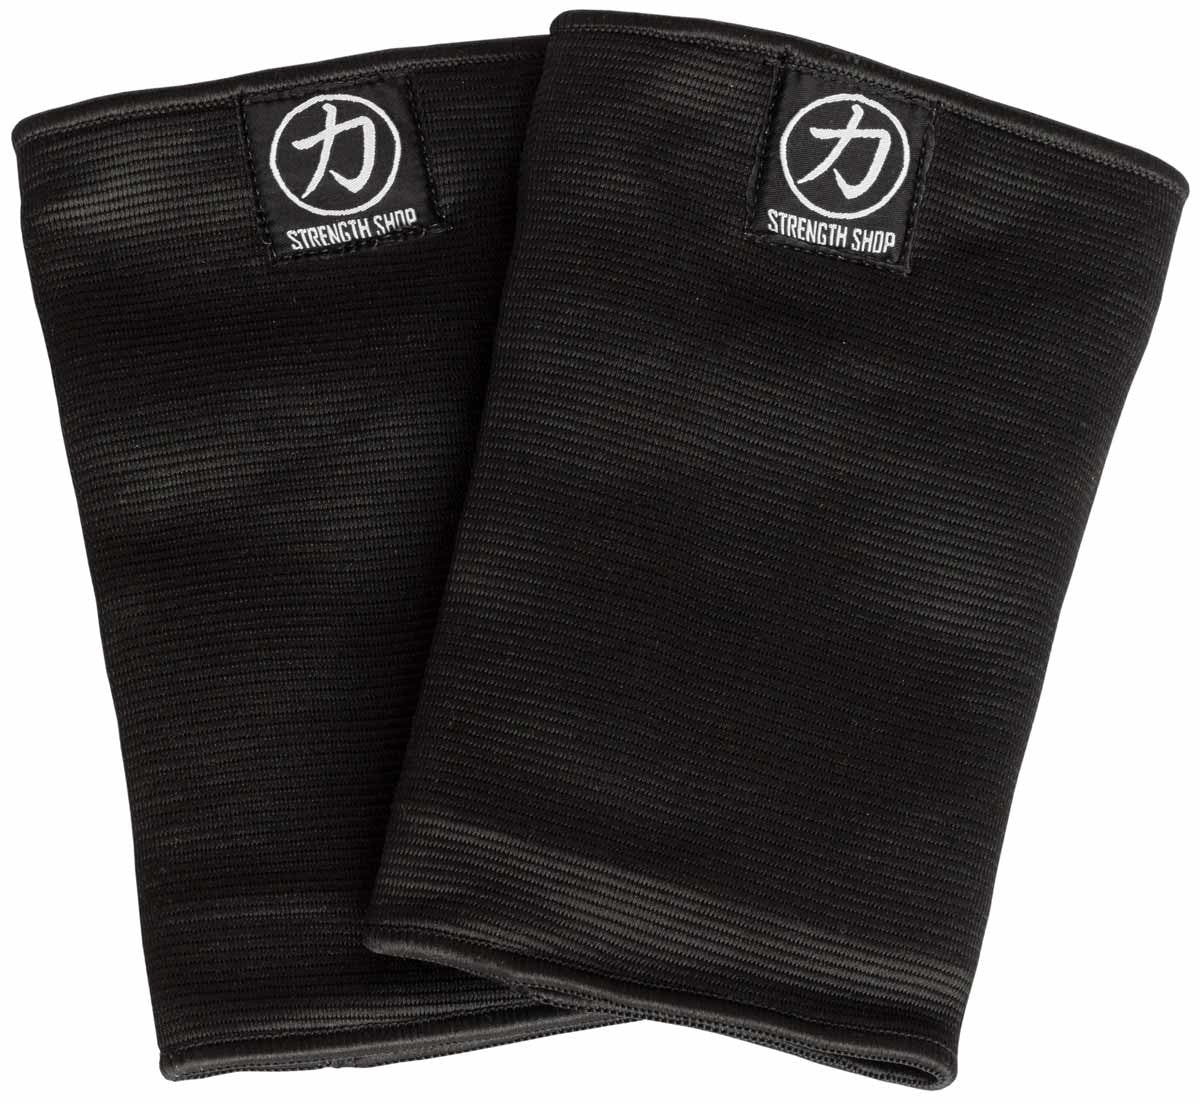 Strength Shop Odin Elbow Sleeves - Triple Ply - Black - Strength Shop USA